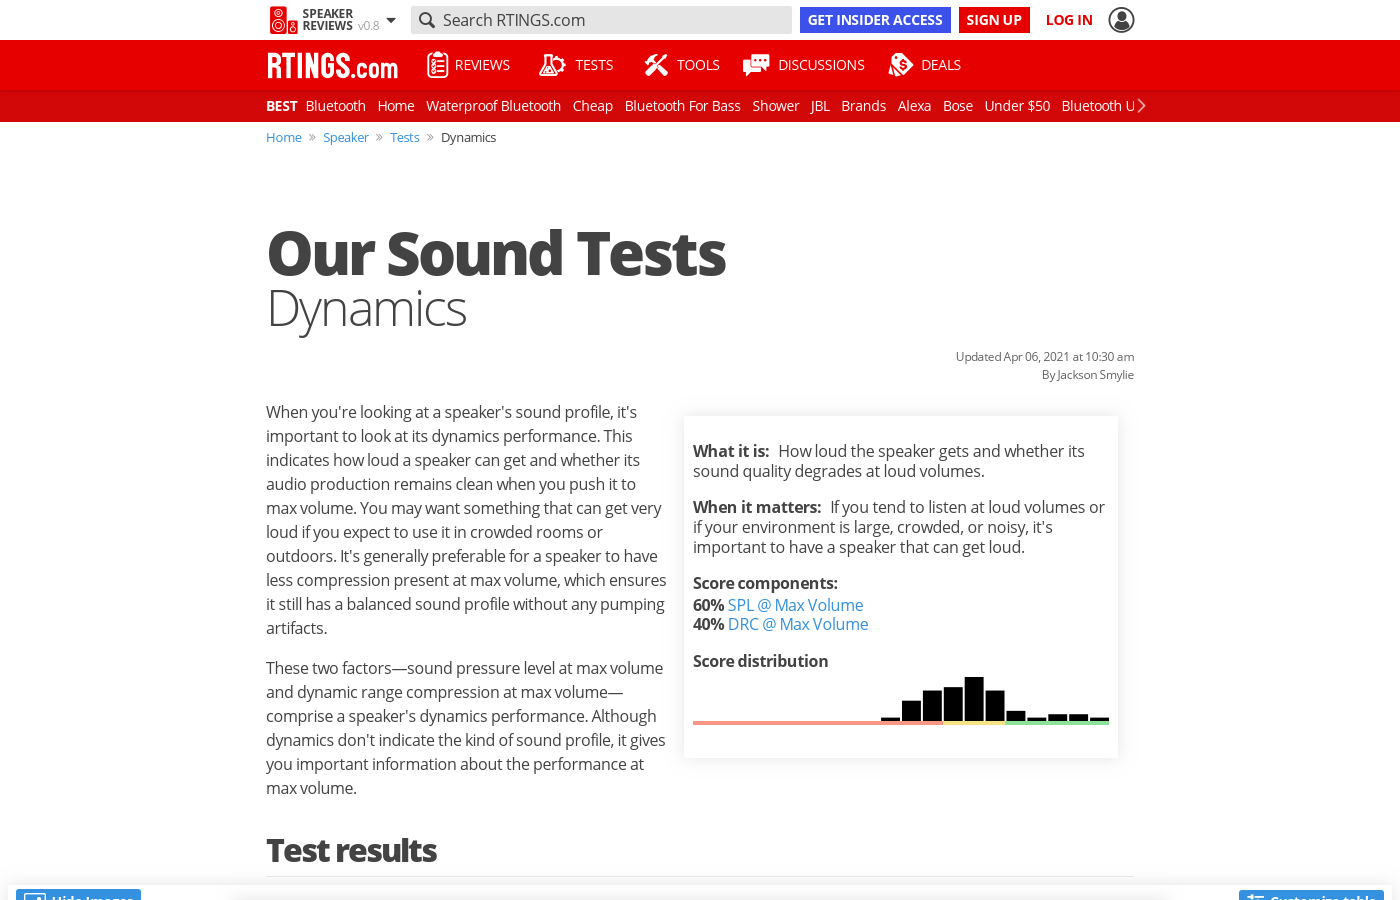 Our Sounds Tests: Dynamics